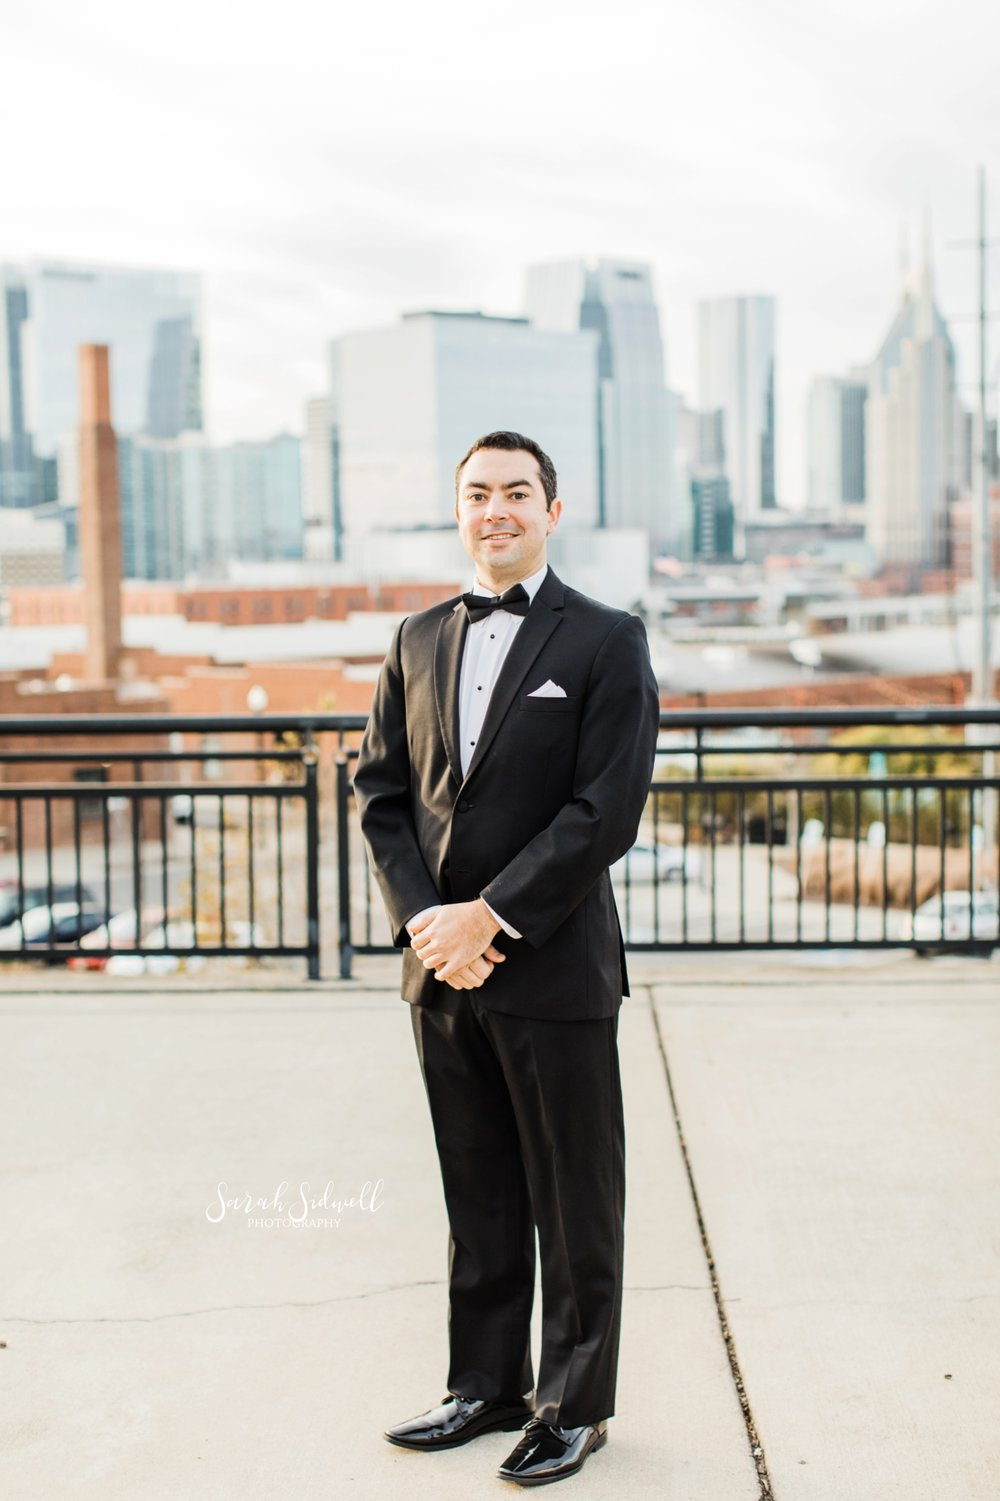 A man stands on a rooftop | Sarah Sidwell Photography | The Bell Tower